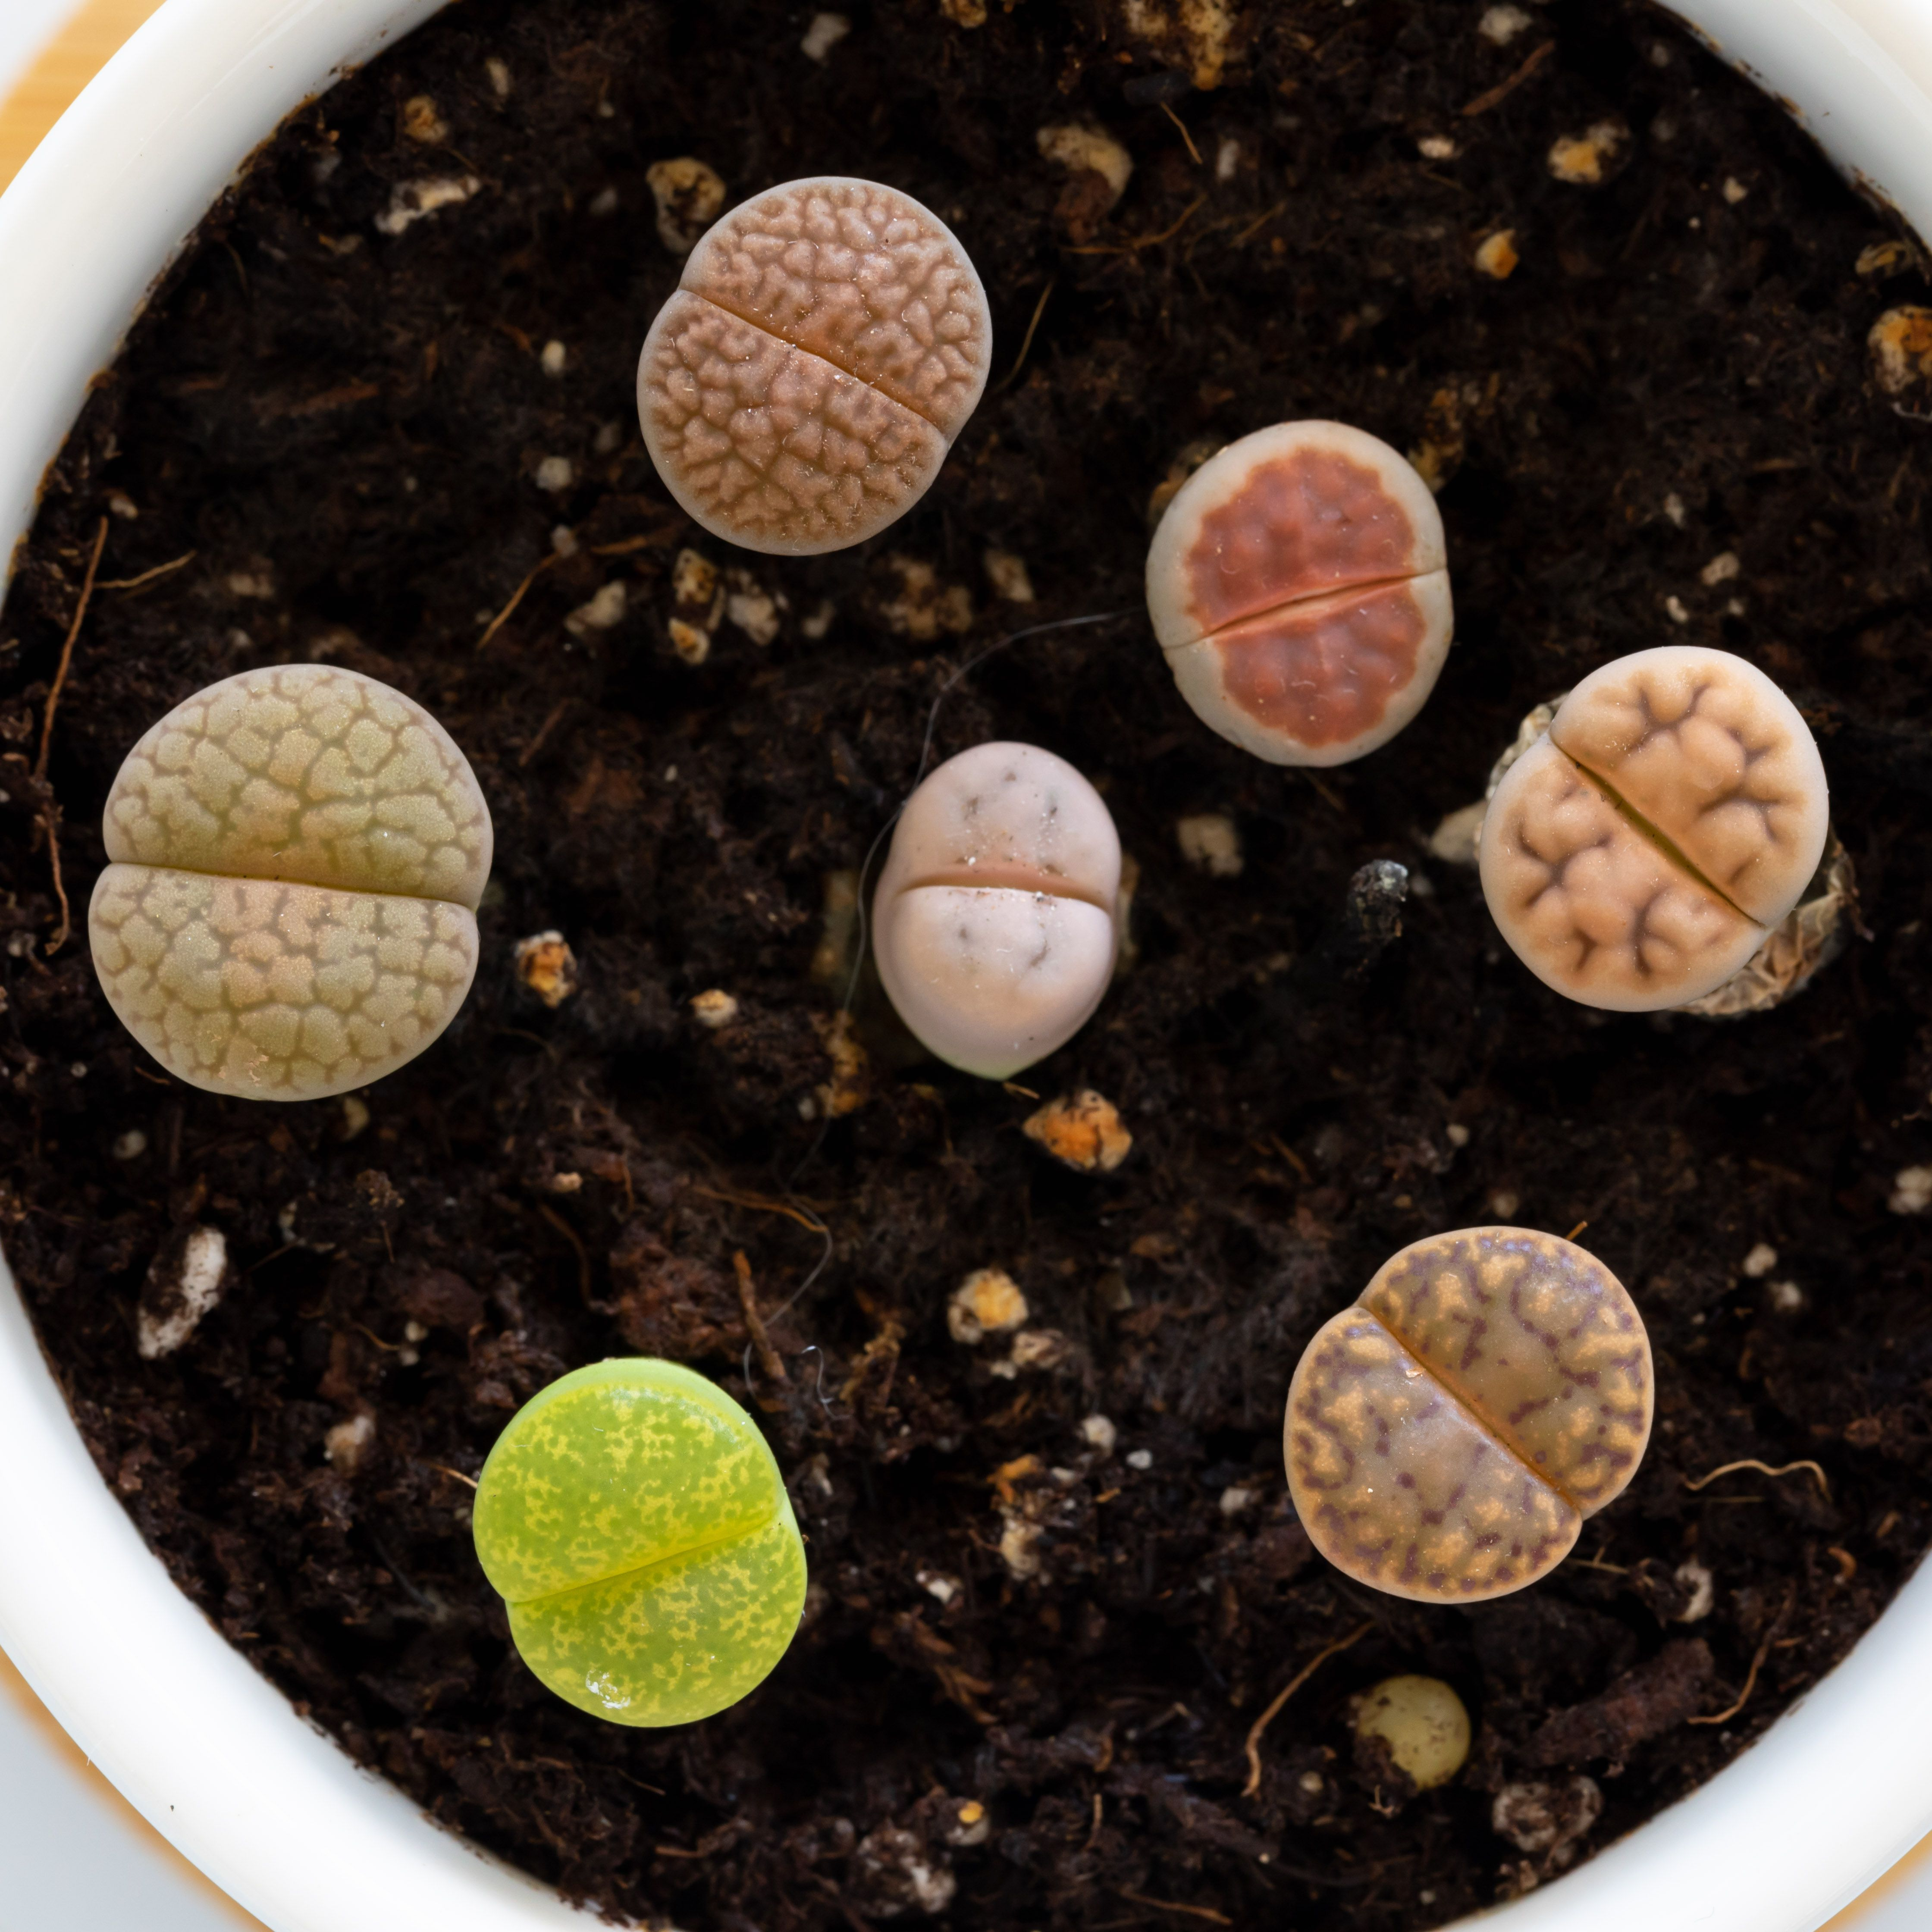 Living Stones Plant Care Growing Guide